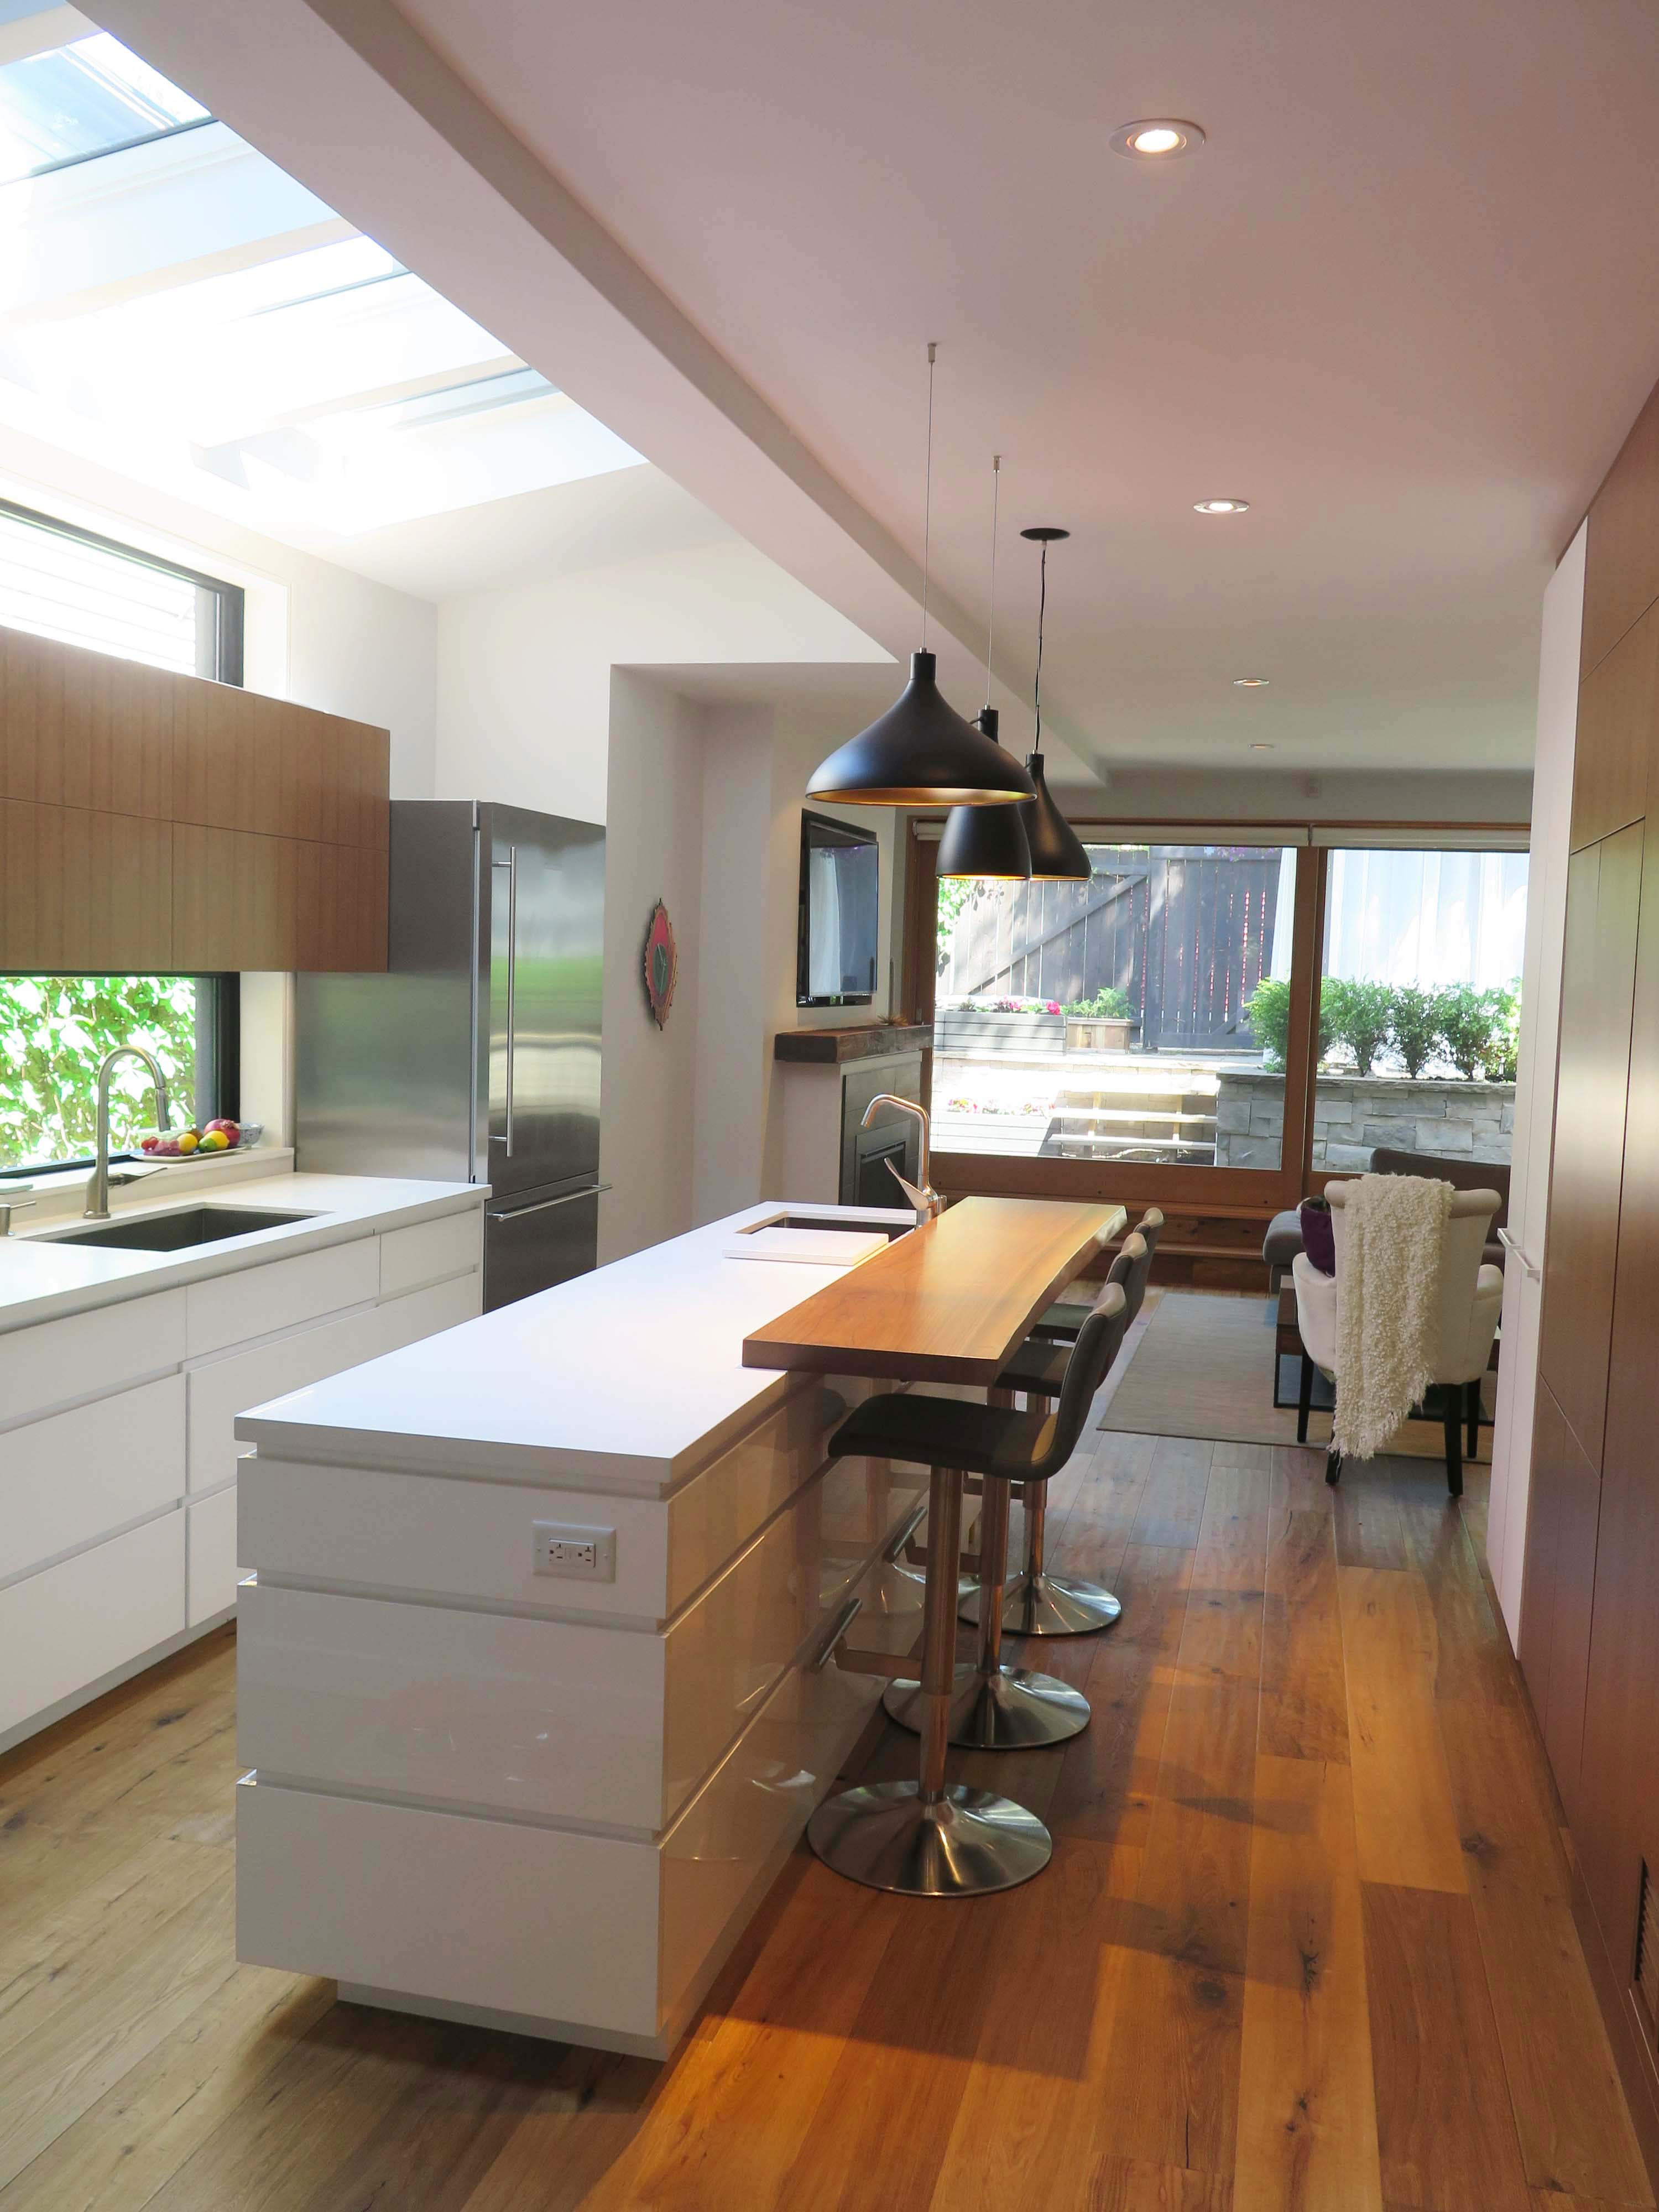 Spruce Street Residence - Robyn Huether Architect - Residential and Heritage consultant - kitchen renovation